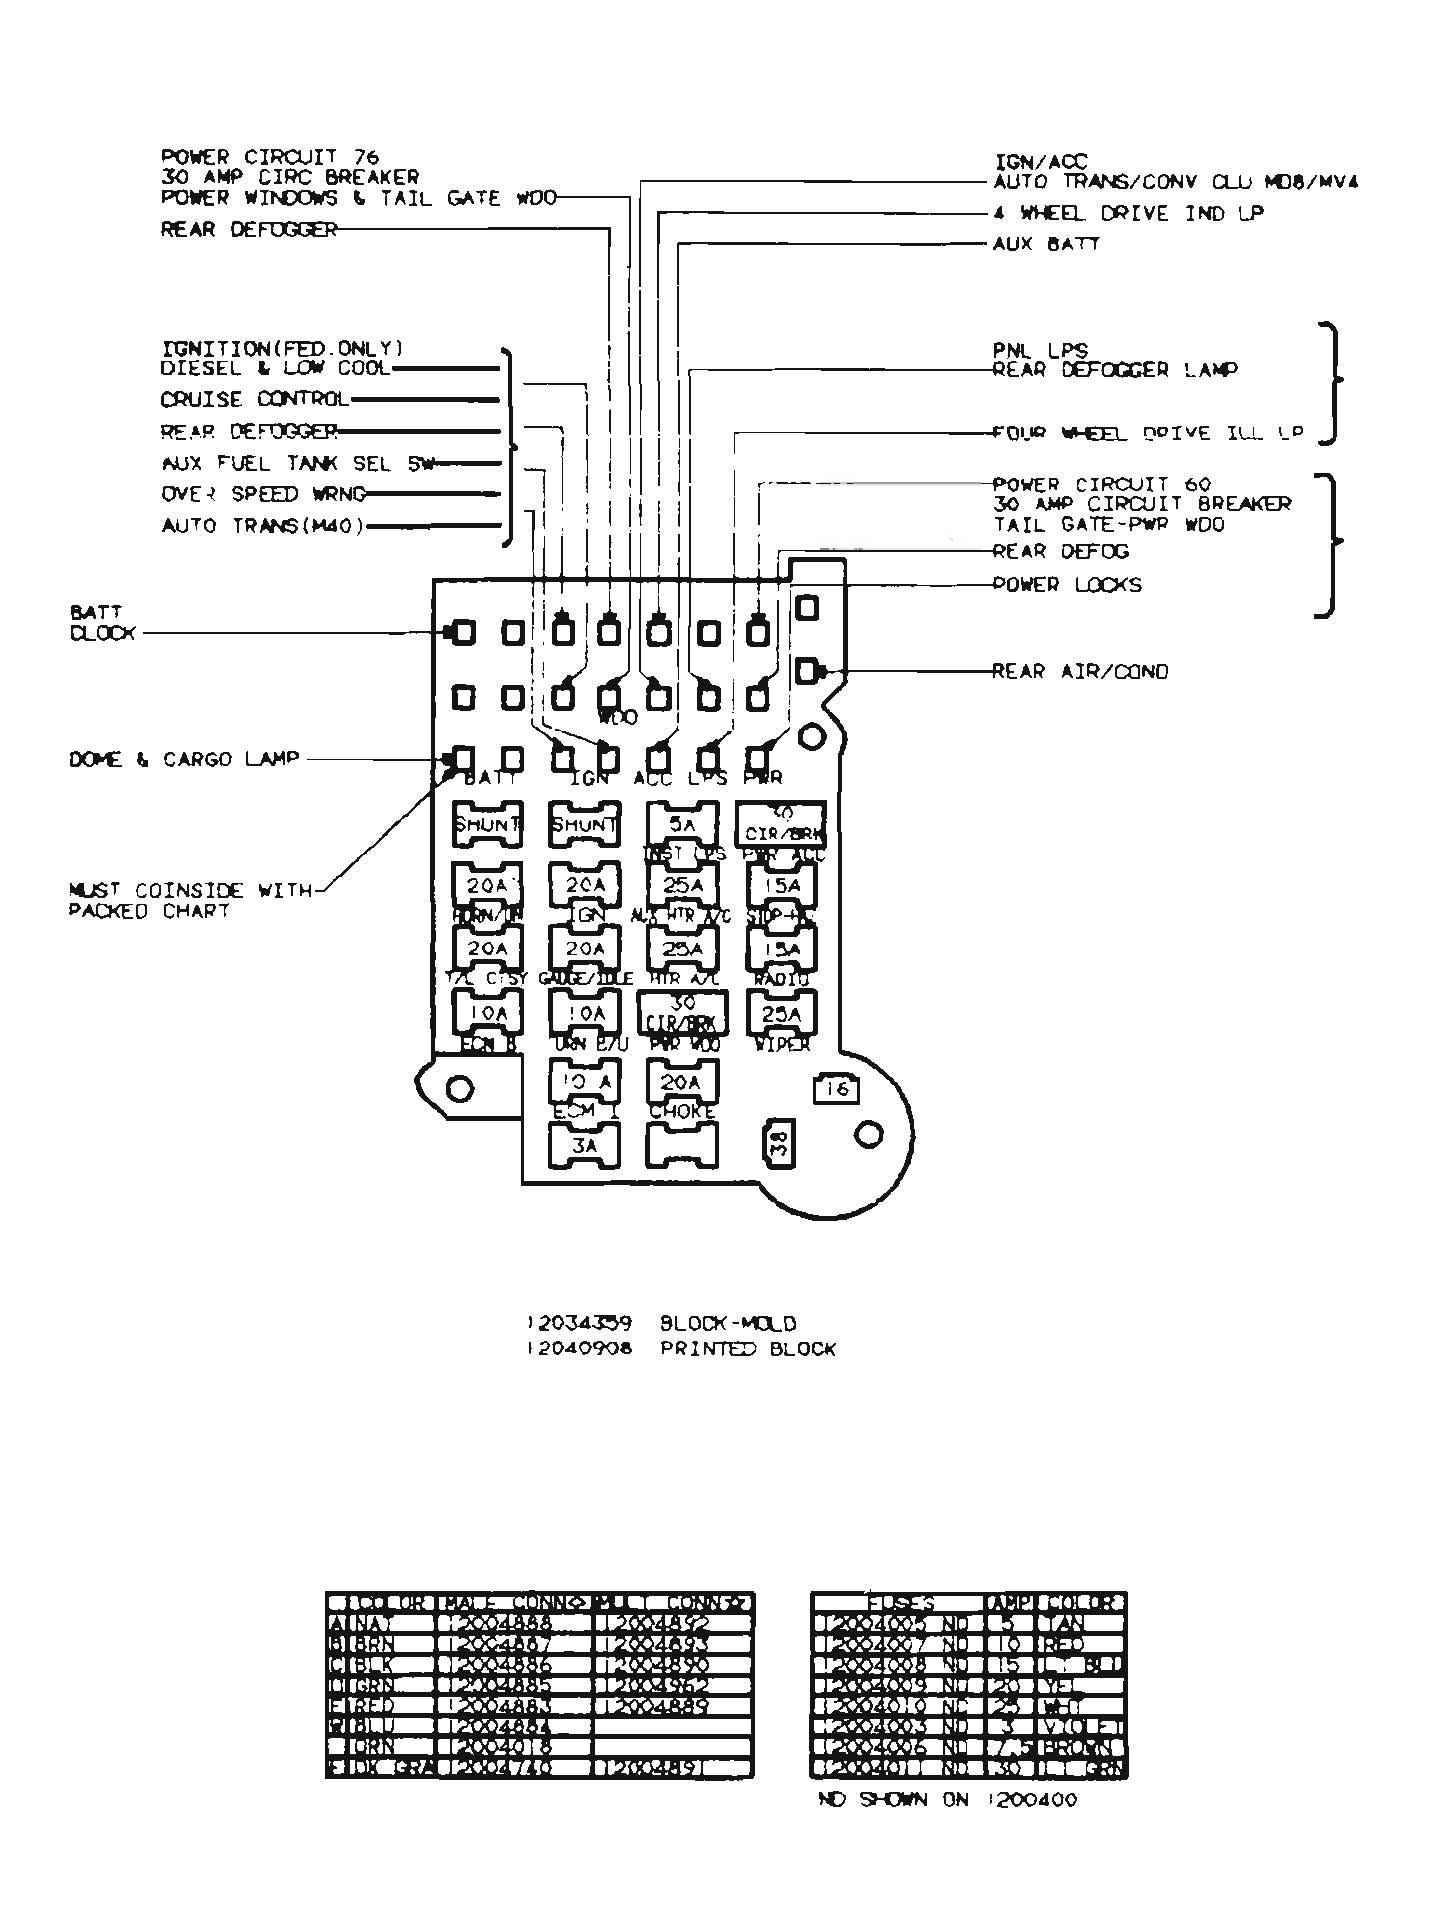 1986 chevy s10 fuse box wiring diagram detailed Chevy S10 Fuse Box Diagram 88 s10 fuse box wiring diagram 1988 s10 fuse box diagram 1986 chevy s10 fuse box